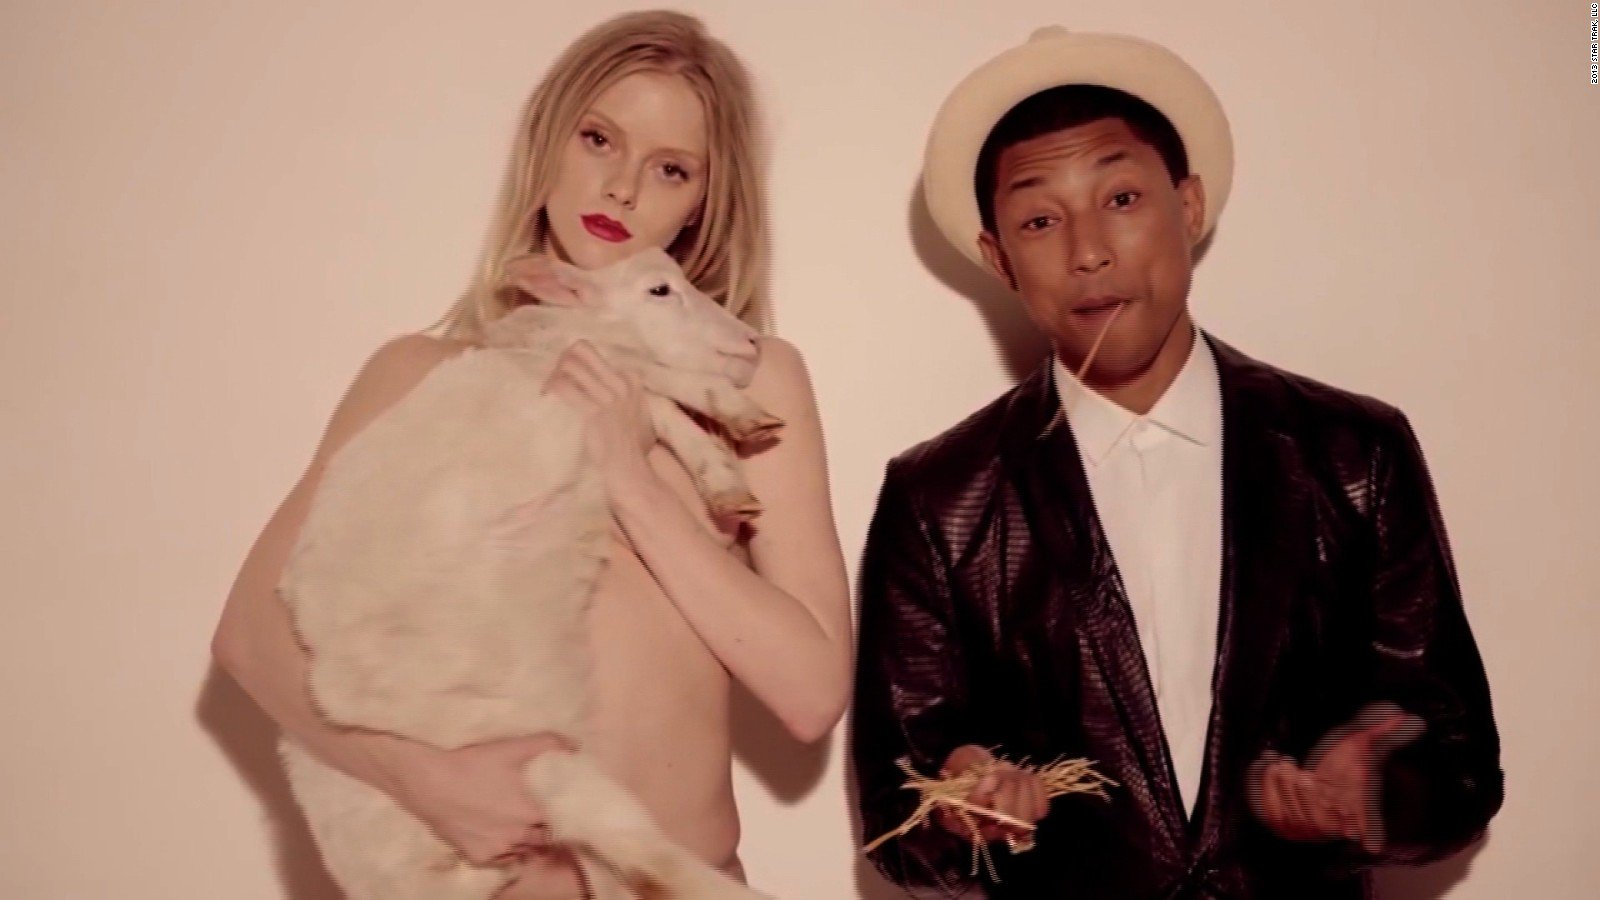 Pharrell Now Freely Admits That 'Blurred Lines' Was Chauvinistic